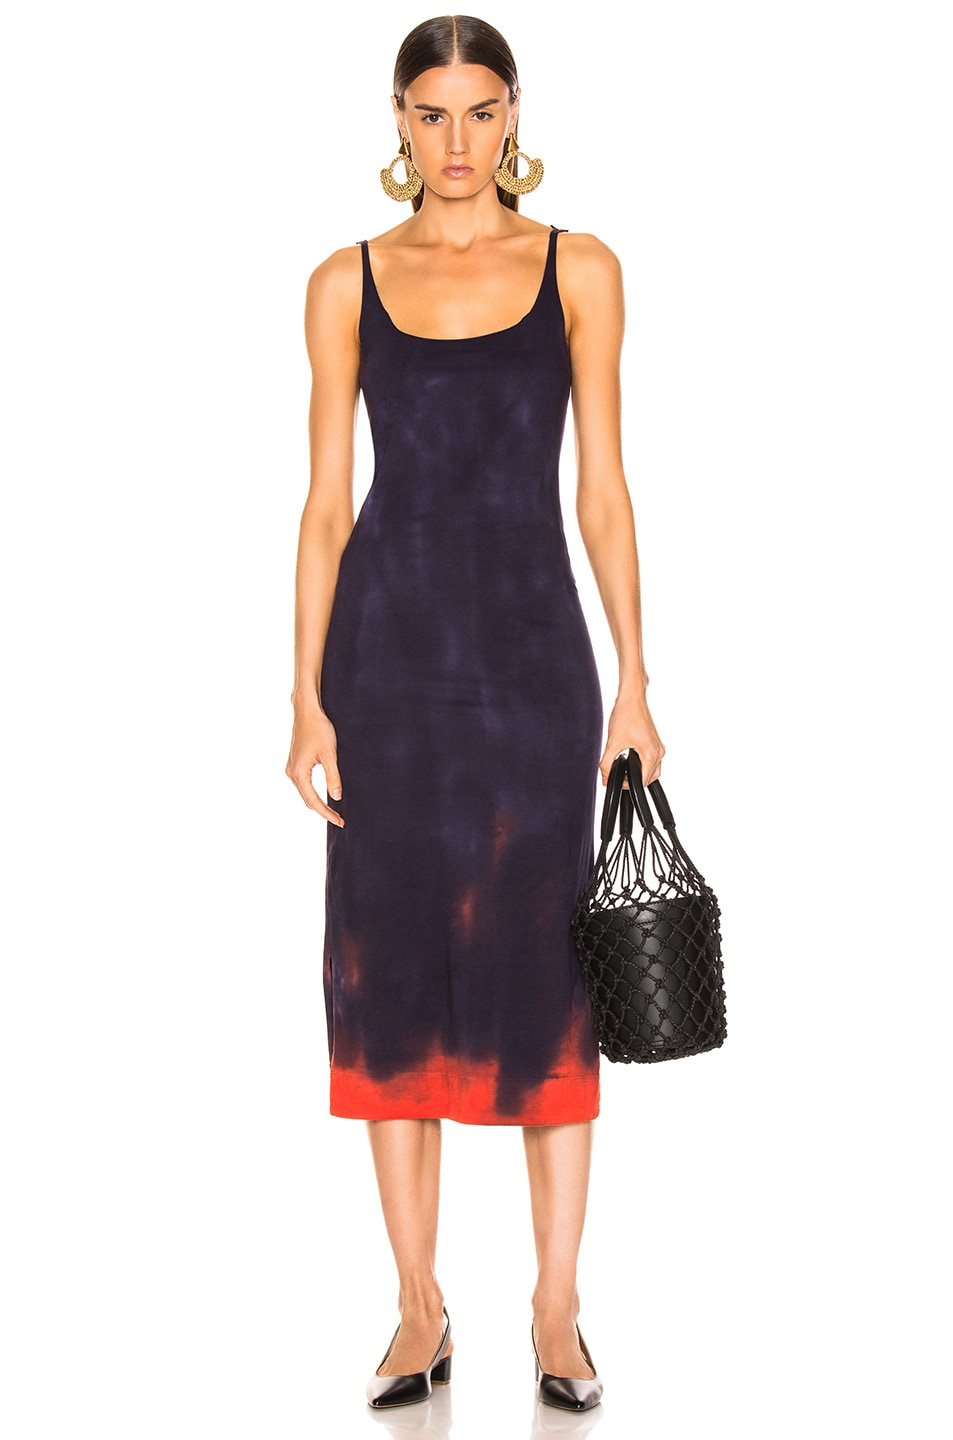 Image 1 of Raquel Allegra Layering Tank Dress in Nightshade Tie Dye